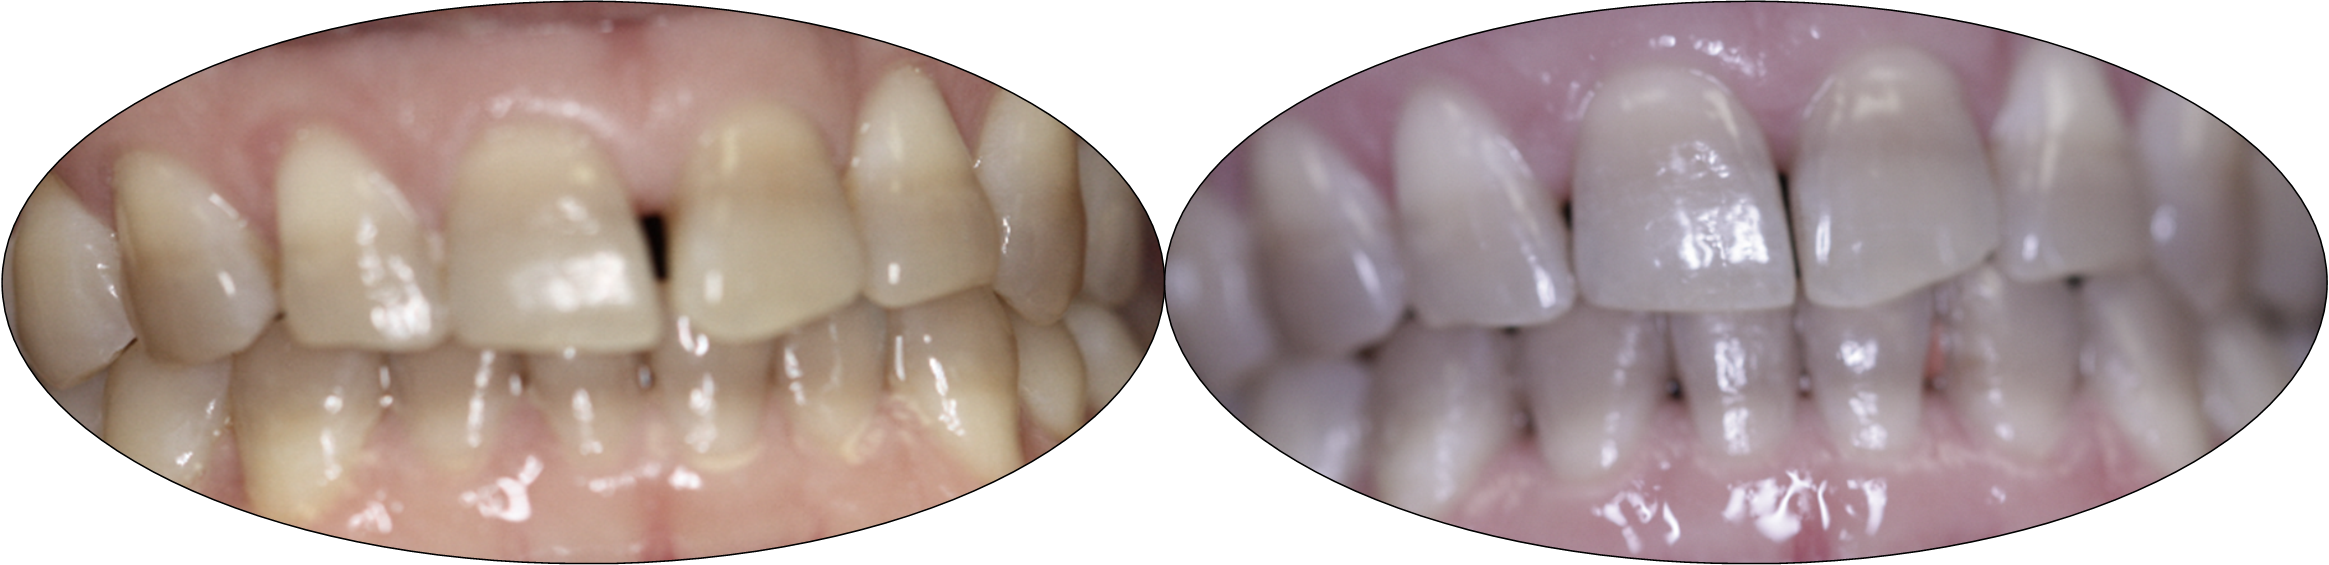 Smile gallery images, before and after Invisalign, patient two